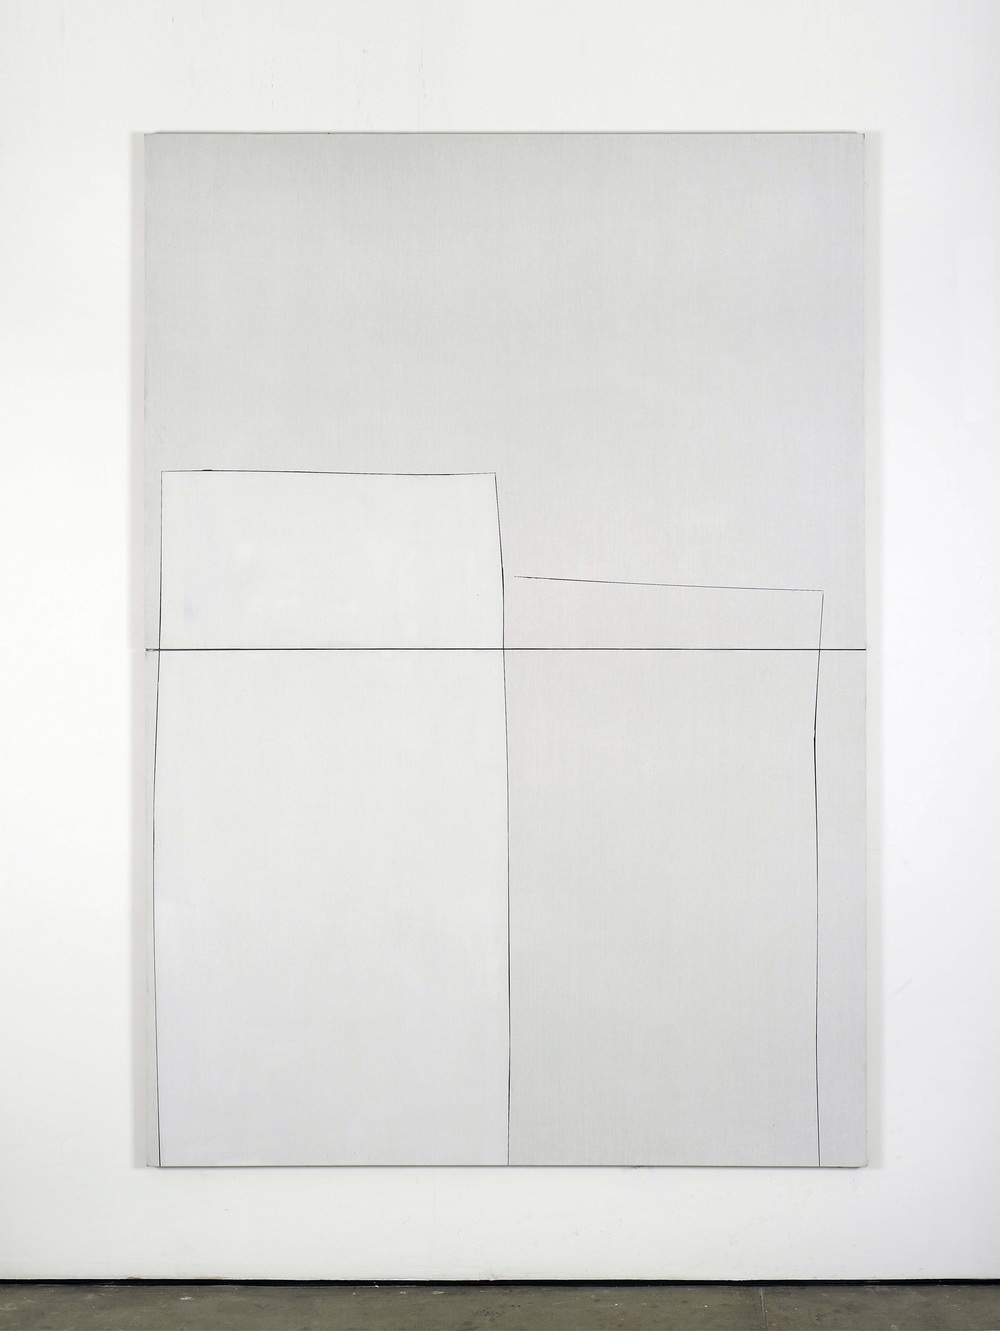 Untitled 2010 Acrylic gesso on canvas 260 x 180 cm / 102.3 x 70.8 in  2 parts, each part 130 x 180 cm / 51.1 x 70.8 in